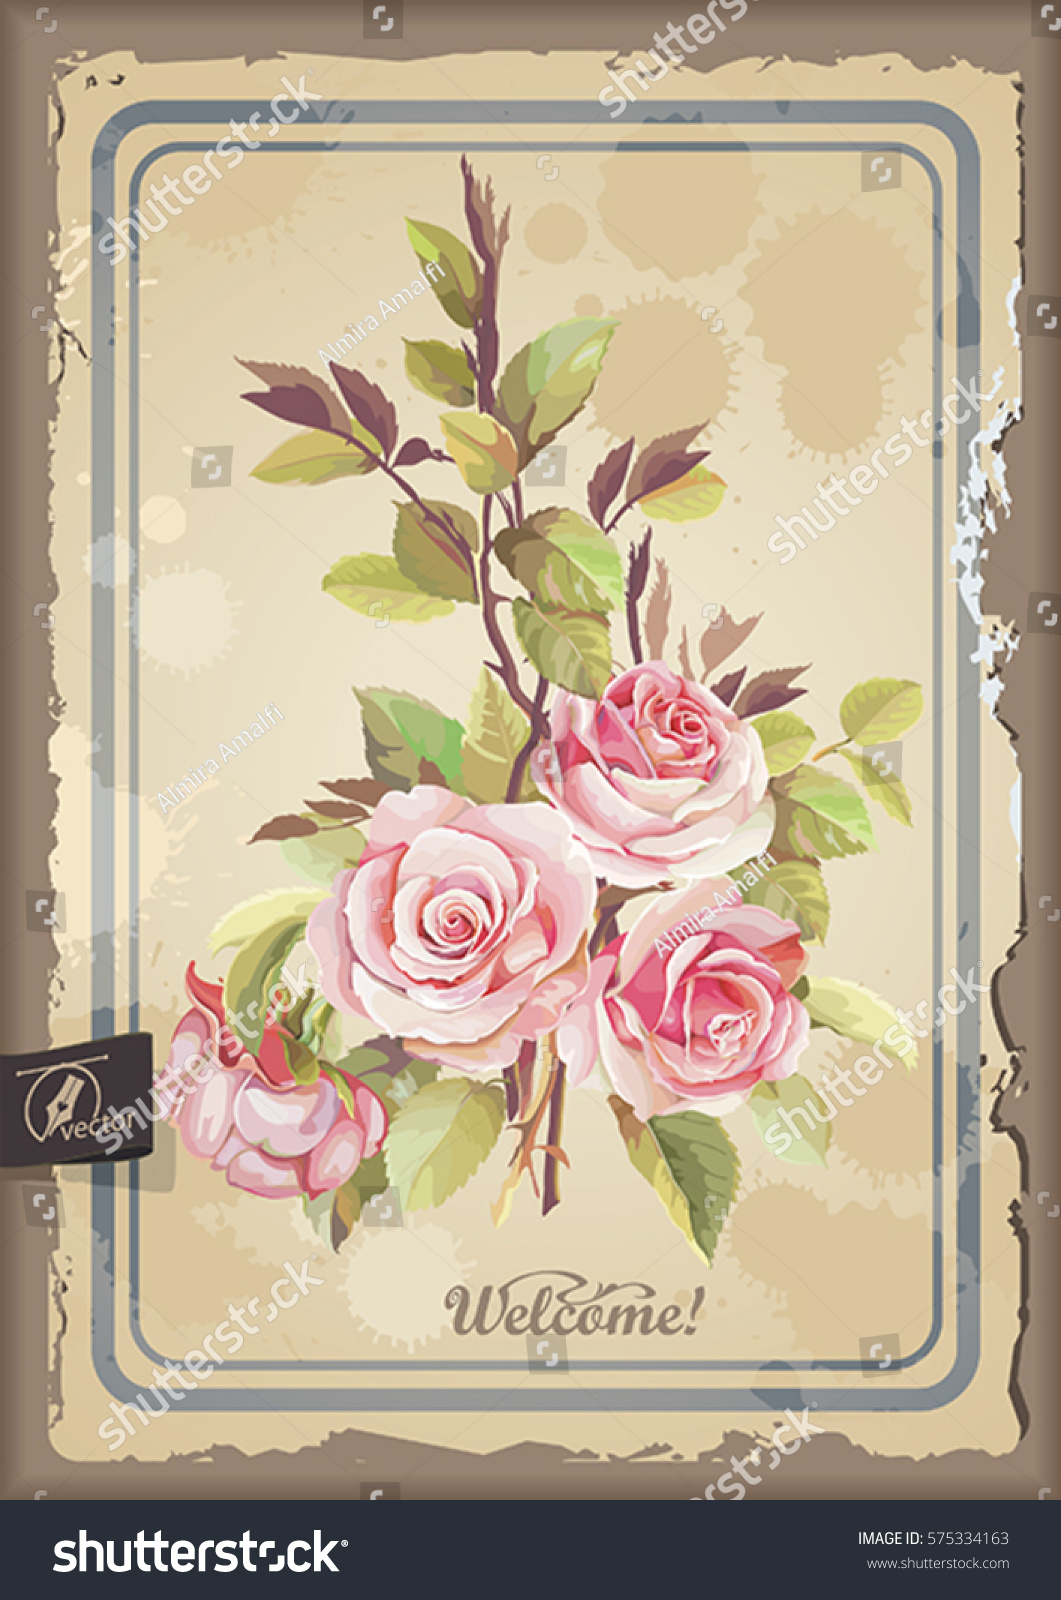 Vintage Watercolor Frame Blooming Pink English Stock Vector HD ... on rosary garden designs, simple garden designs, small urban garden designs, small formal garden designs, no maintenance garden designs, terrace garden designs, herb garden designs, fairy garden designs, minecraft garden designs, sun garden designs, school garden designs, front garden designs, unique garden designs, small garden fence designs, country garden designs, bamboo garden designs, amazing garden designs, outdoor garden designs, back garden designs, witch garden designs,